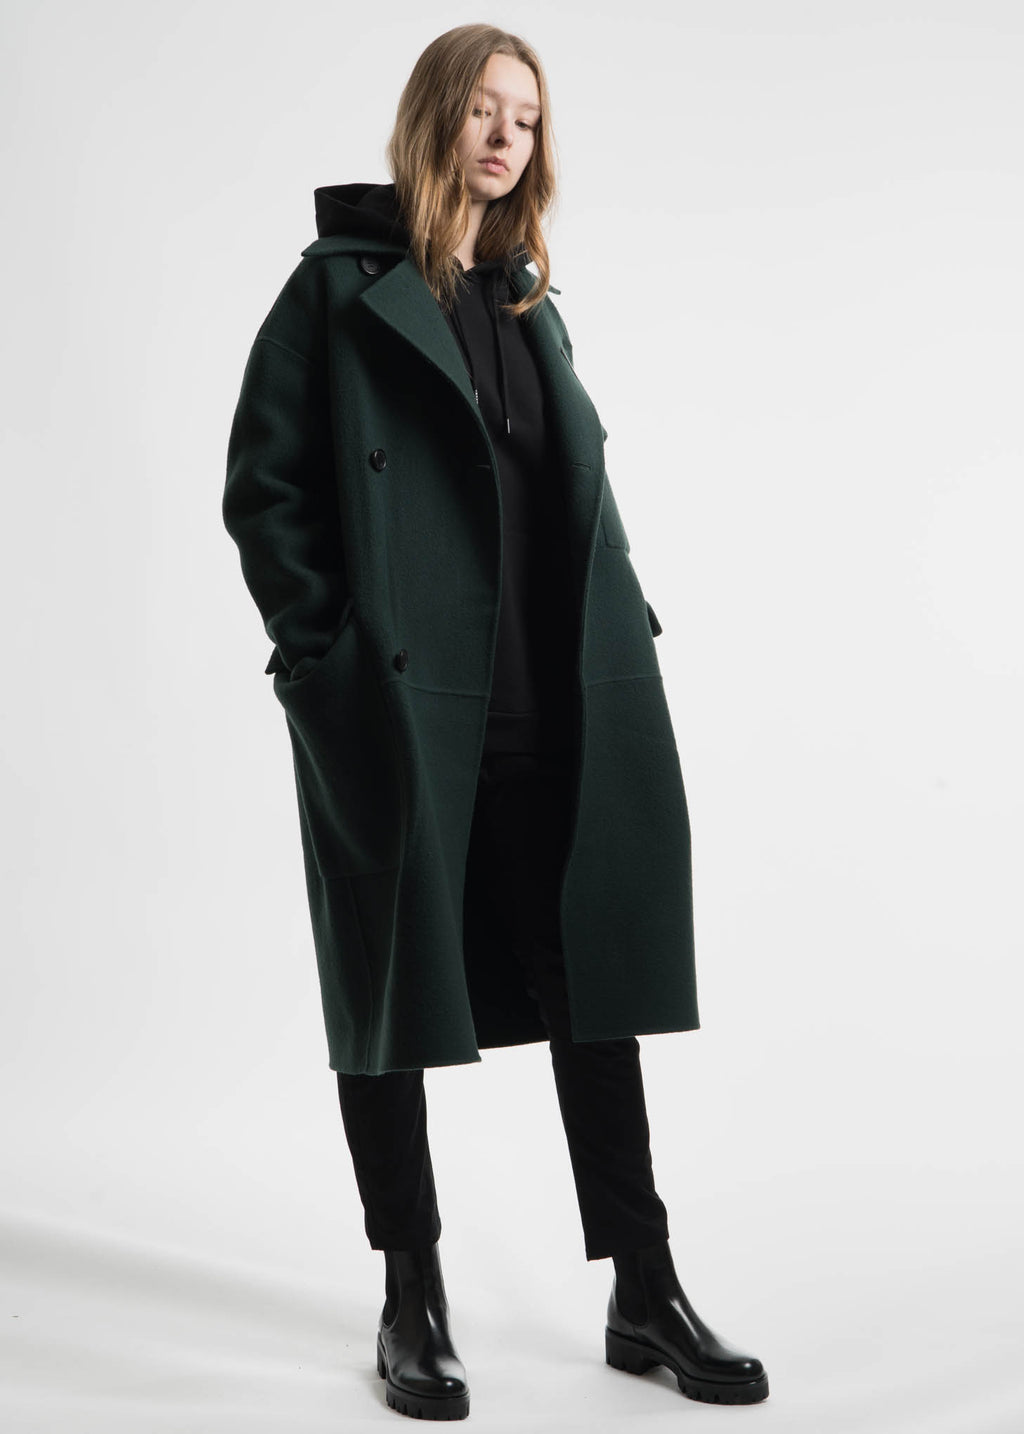 Etudes, Green Monument Wool Coat, 017 Shop